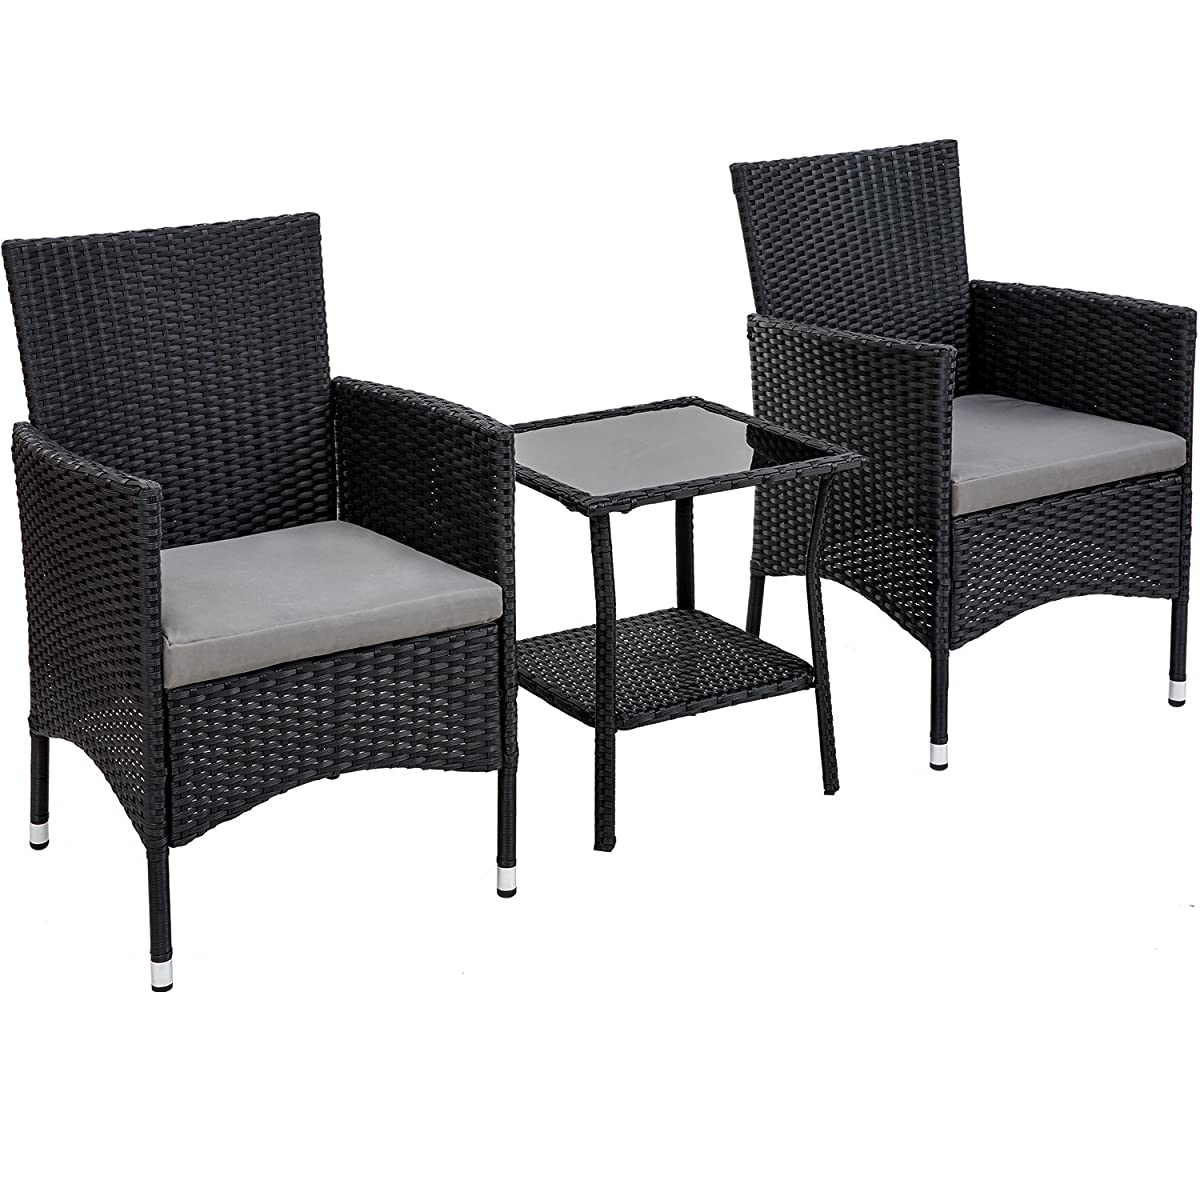 Merax Outdoor 3 Pcs Patio Furniture Table Chair Set with Cushion Wicker Outdoor Furniture Set